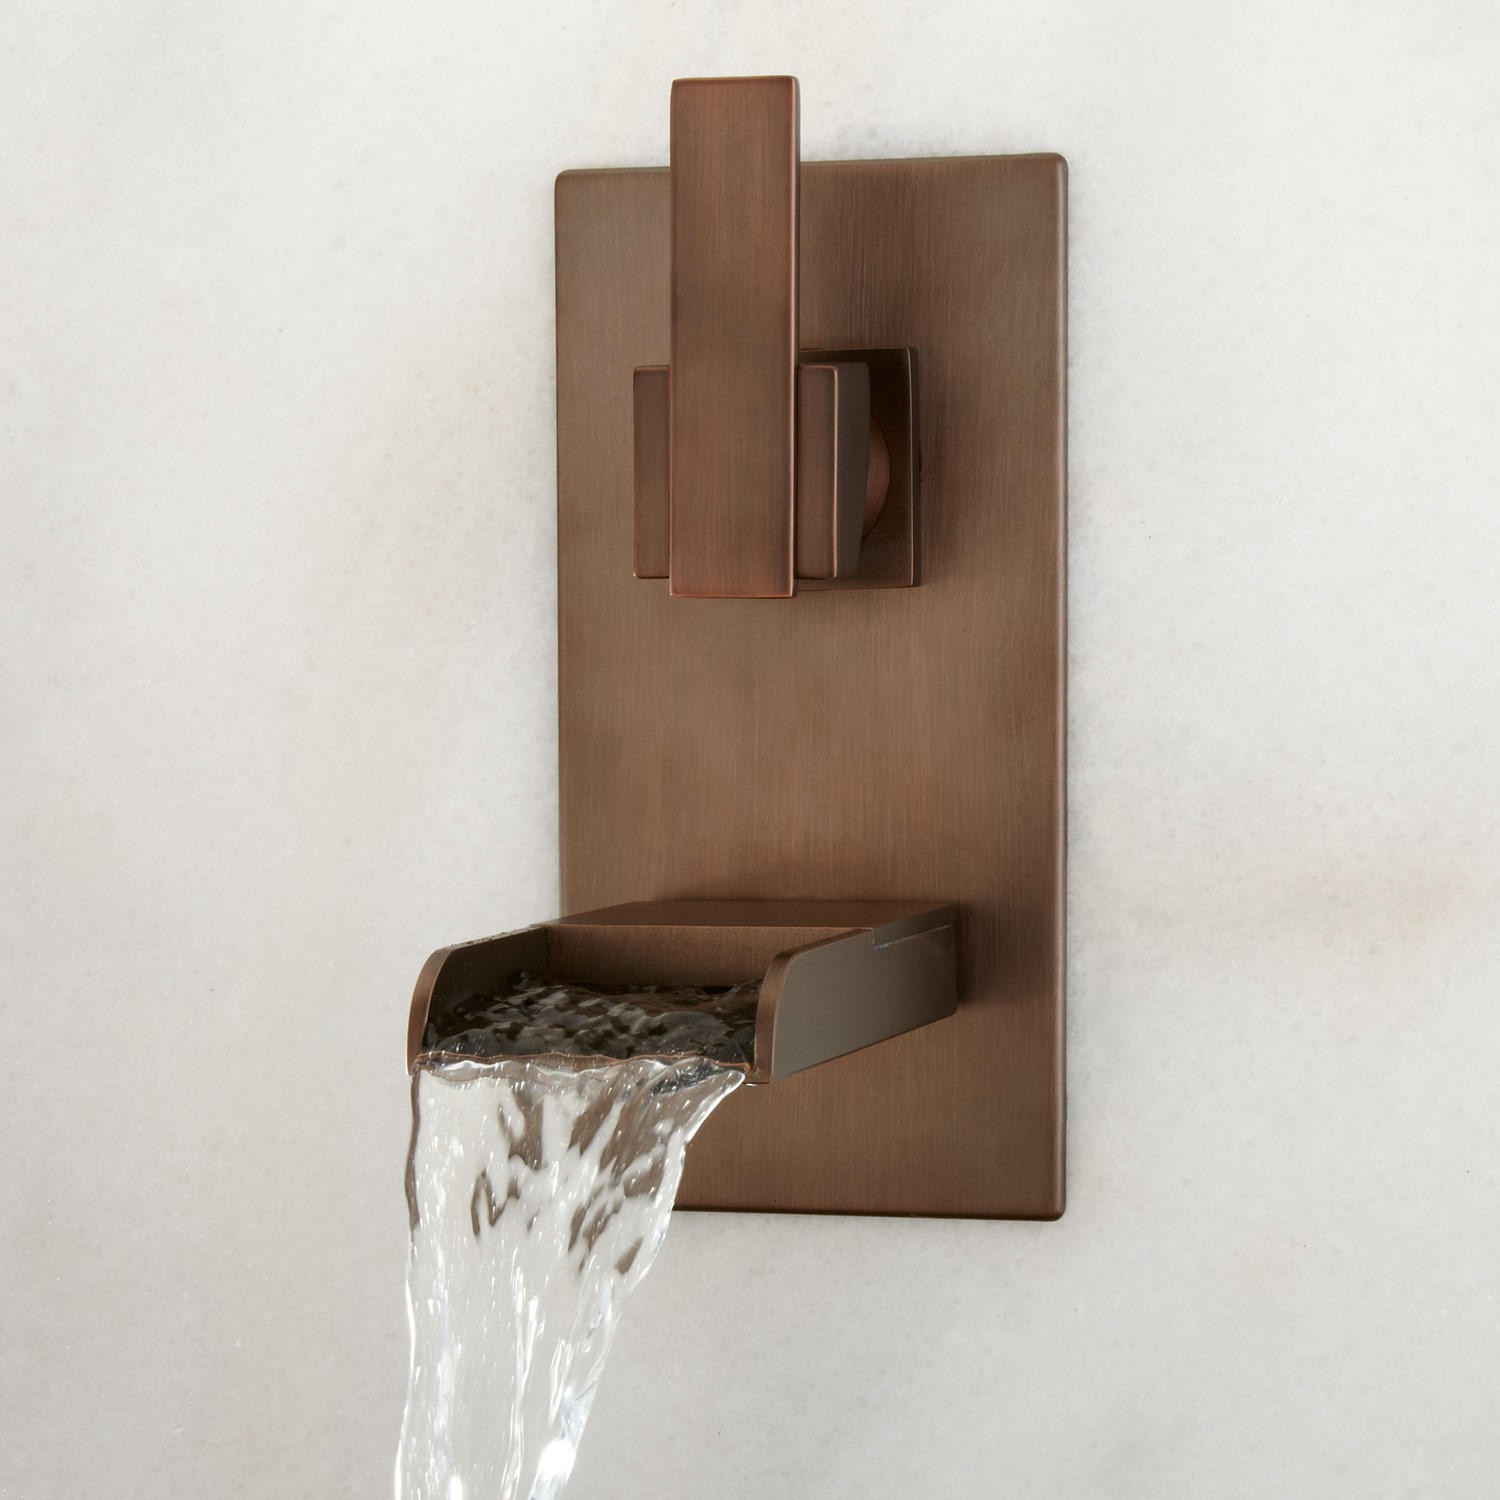 Wall Mount Waterfall Faucet For Tub With Oil Rubbed Bronze Bathroom Ideas Installed On